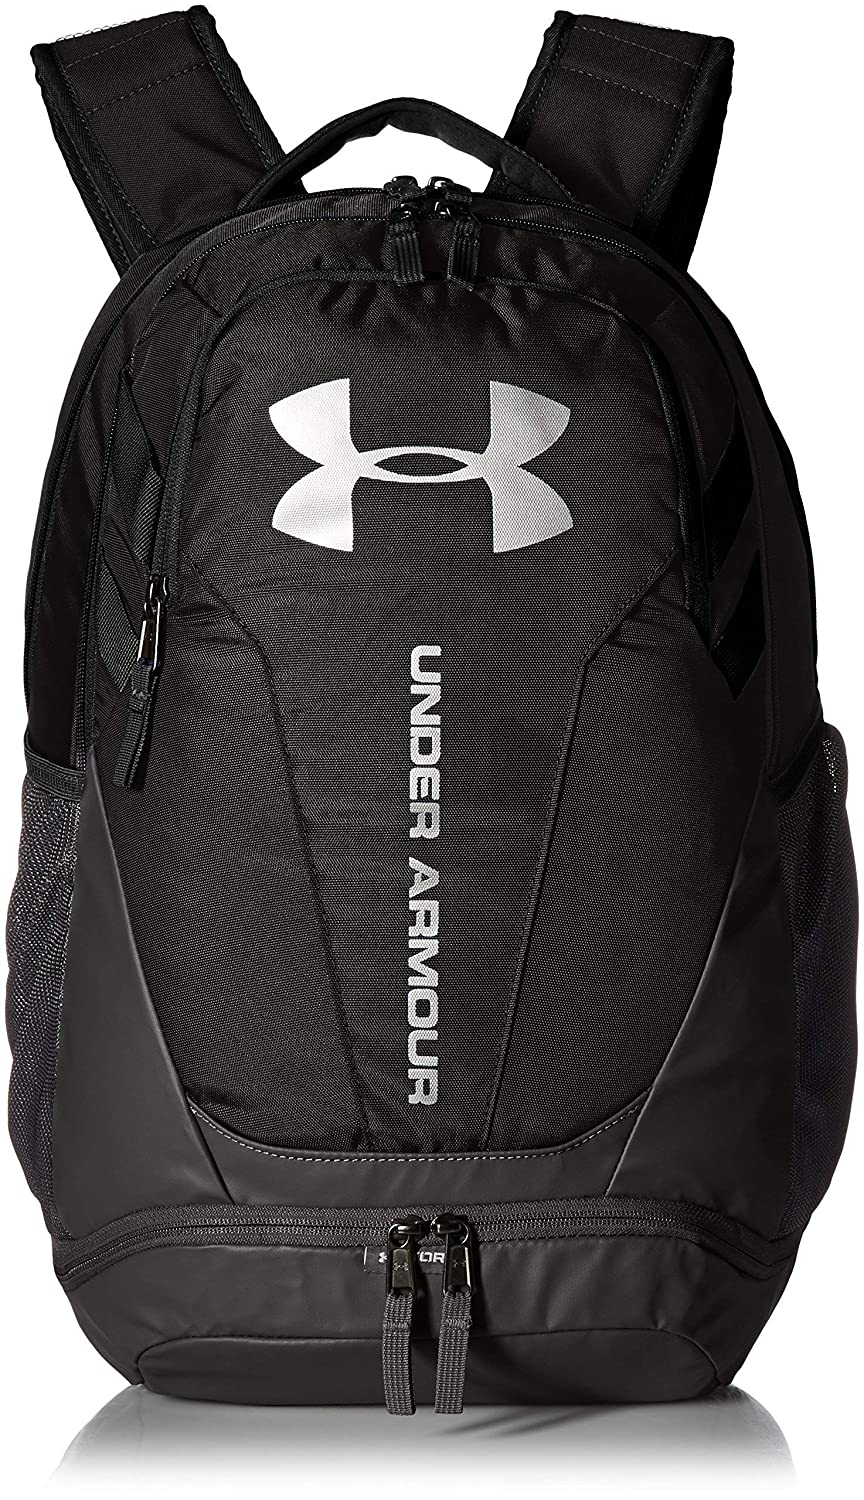 460b3a8738 (CERTIFIED REFURBISHED) Under Armour 30 Ltrs Penta Pink Graphite Graphite  Laptop Backpack (UA Hustle 3.0 Backpack)  Amazon.in  Bags